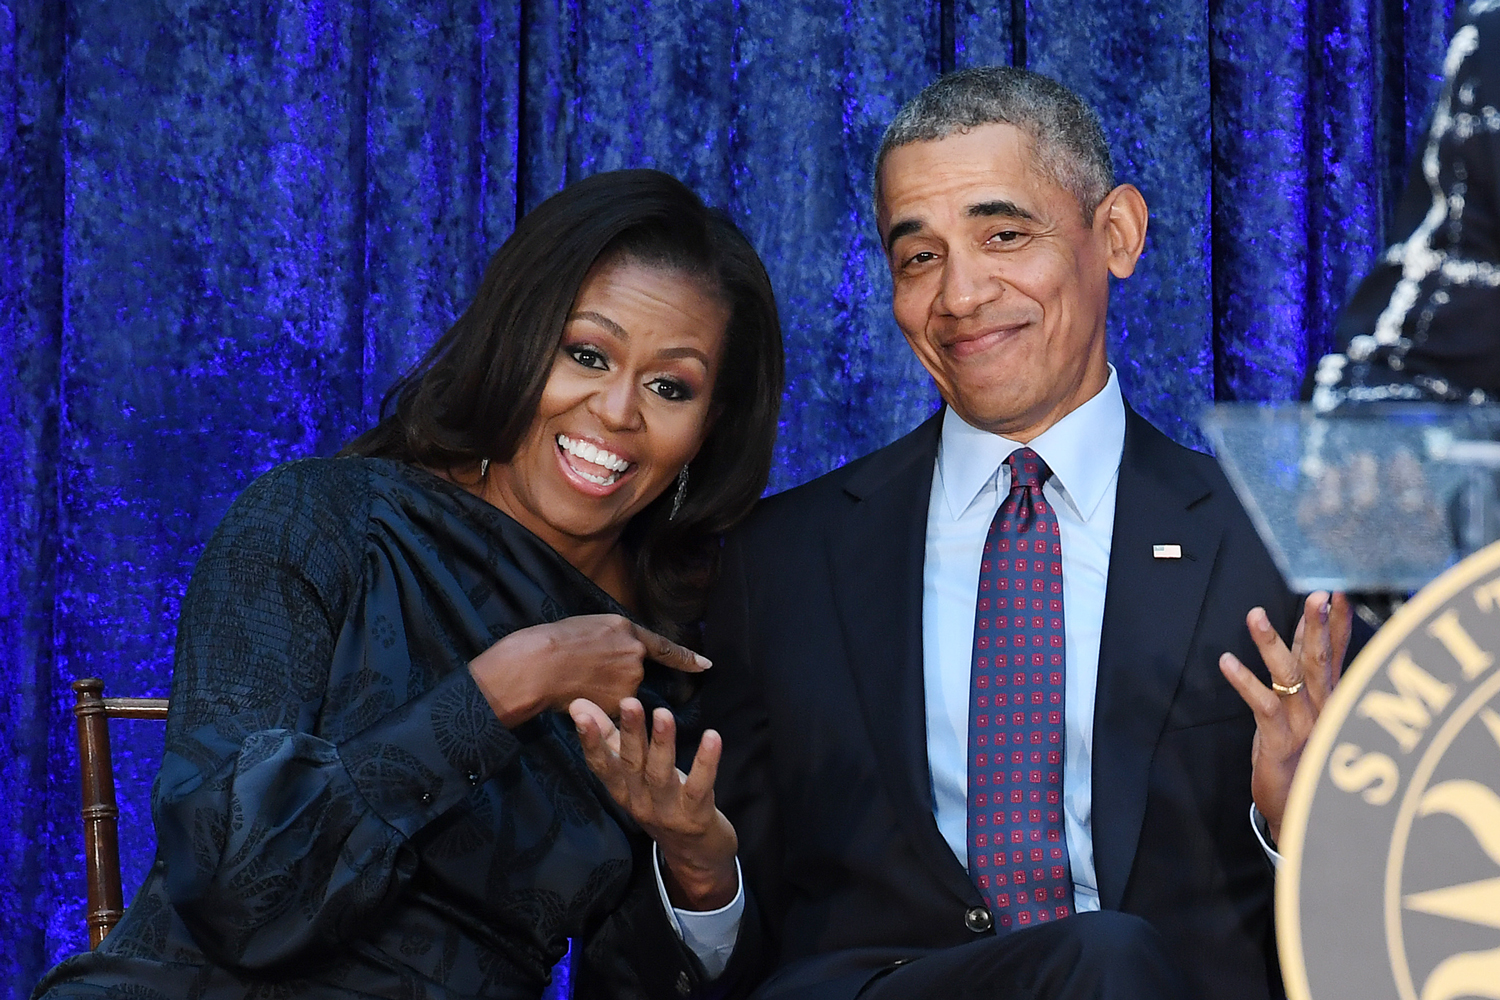 ee88e2b0 Obamas' Production Company Teams With Spotify for New Podcasts – Rolling  Stone